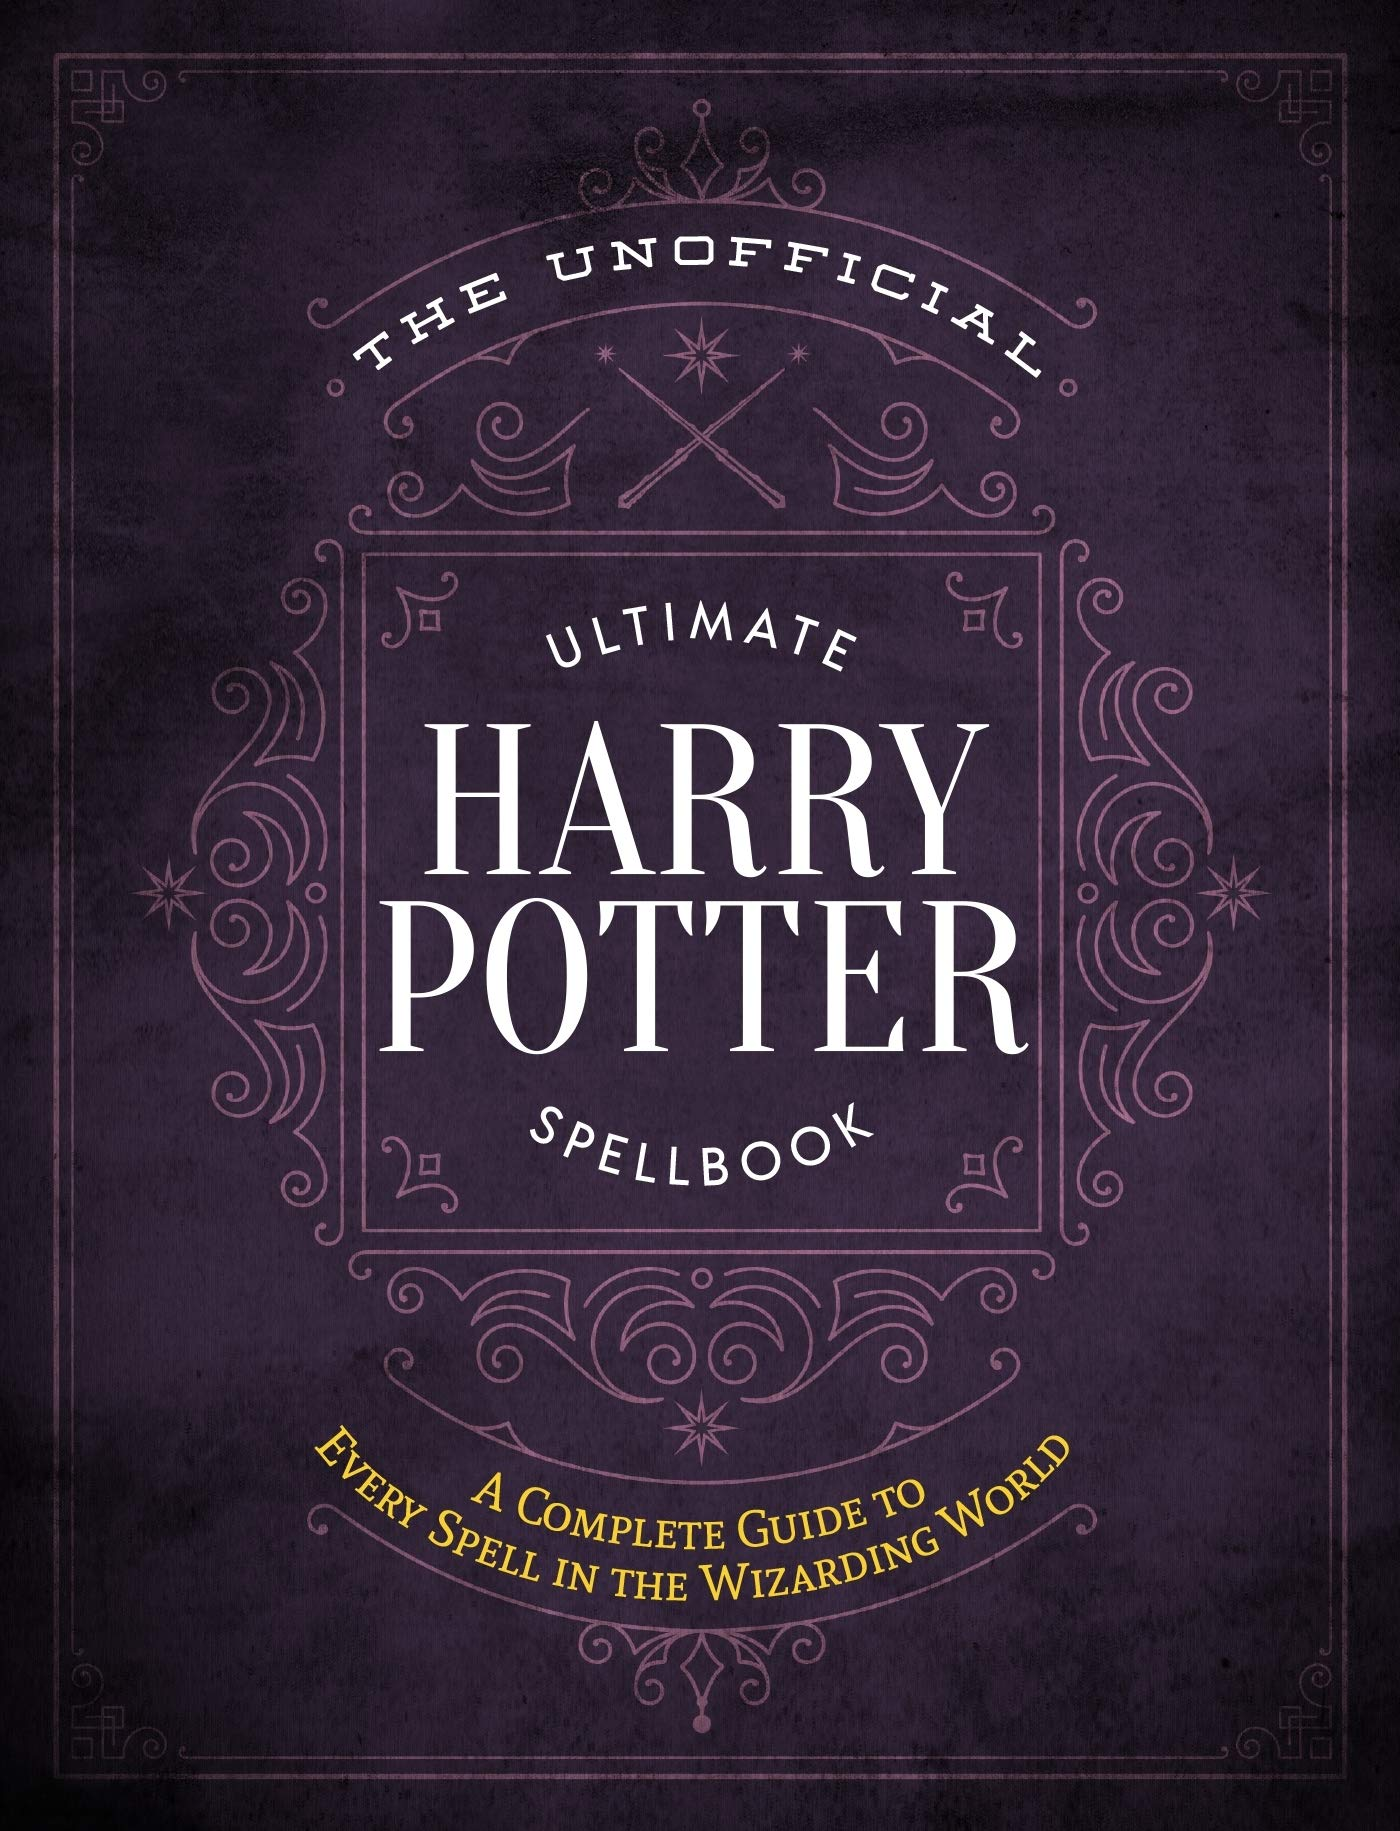 The Unofficial Ultimate Harry Potter Spellbook: A complete reference guide to every spell in the wizarding world (The Unofficial Harry Potter Reference Library)